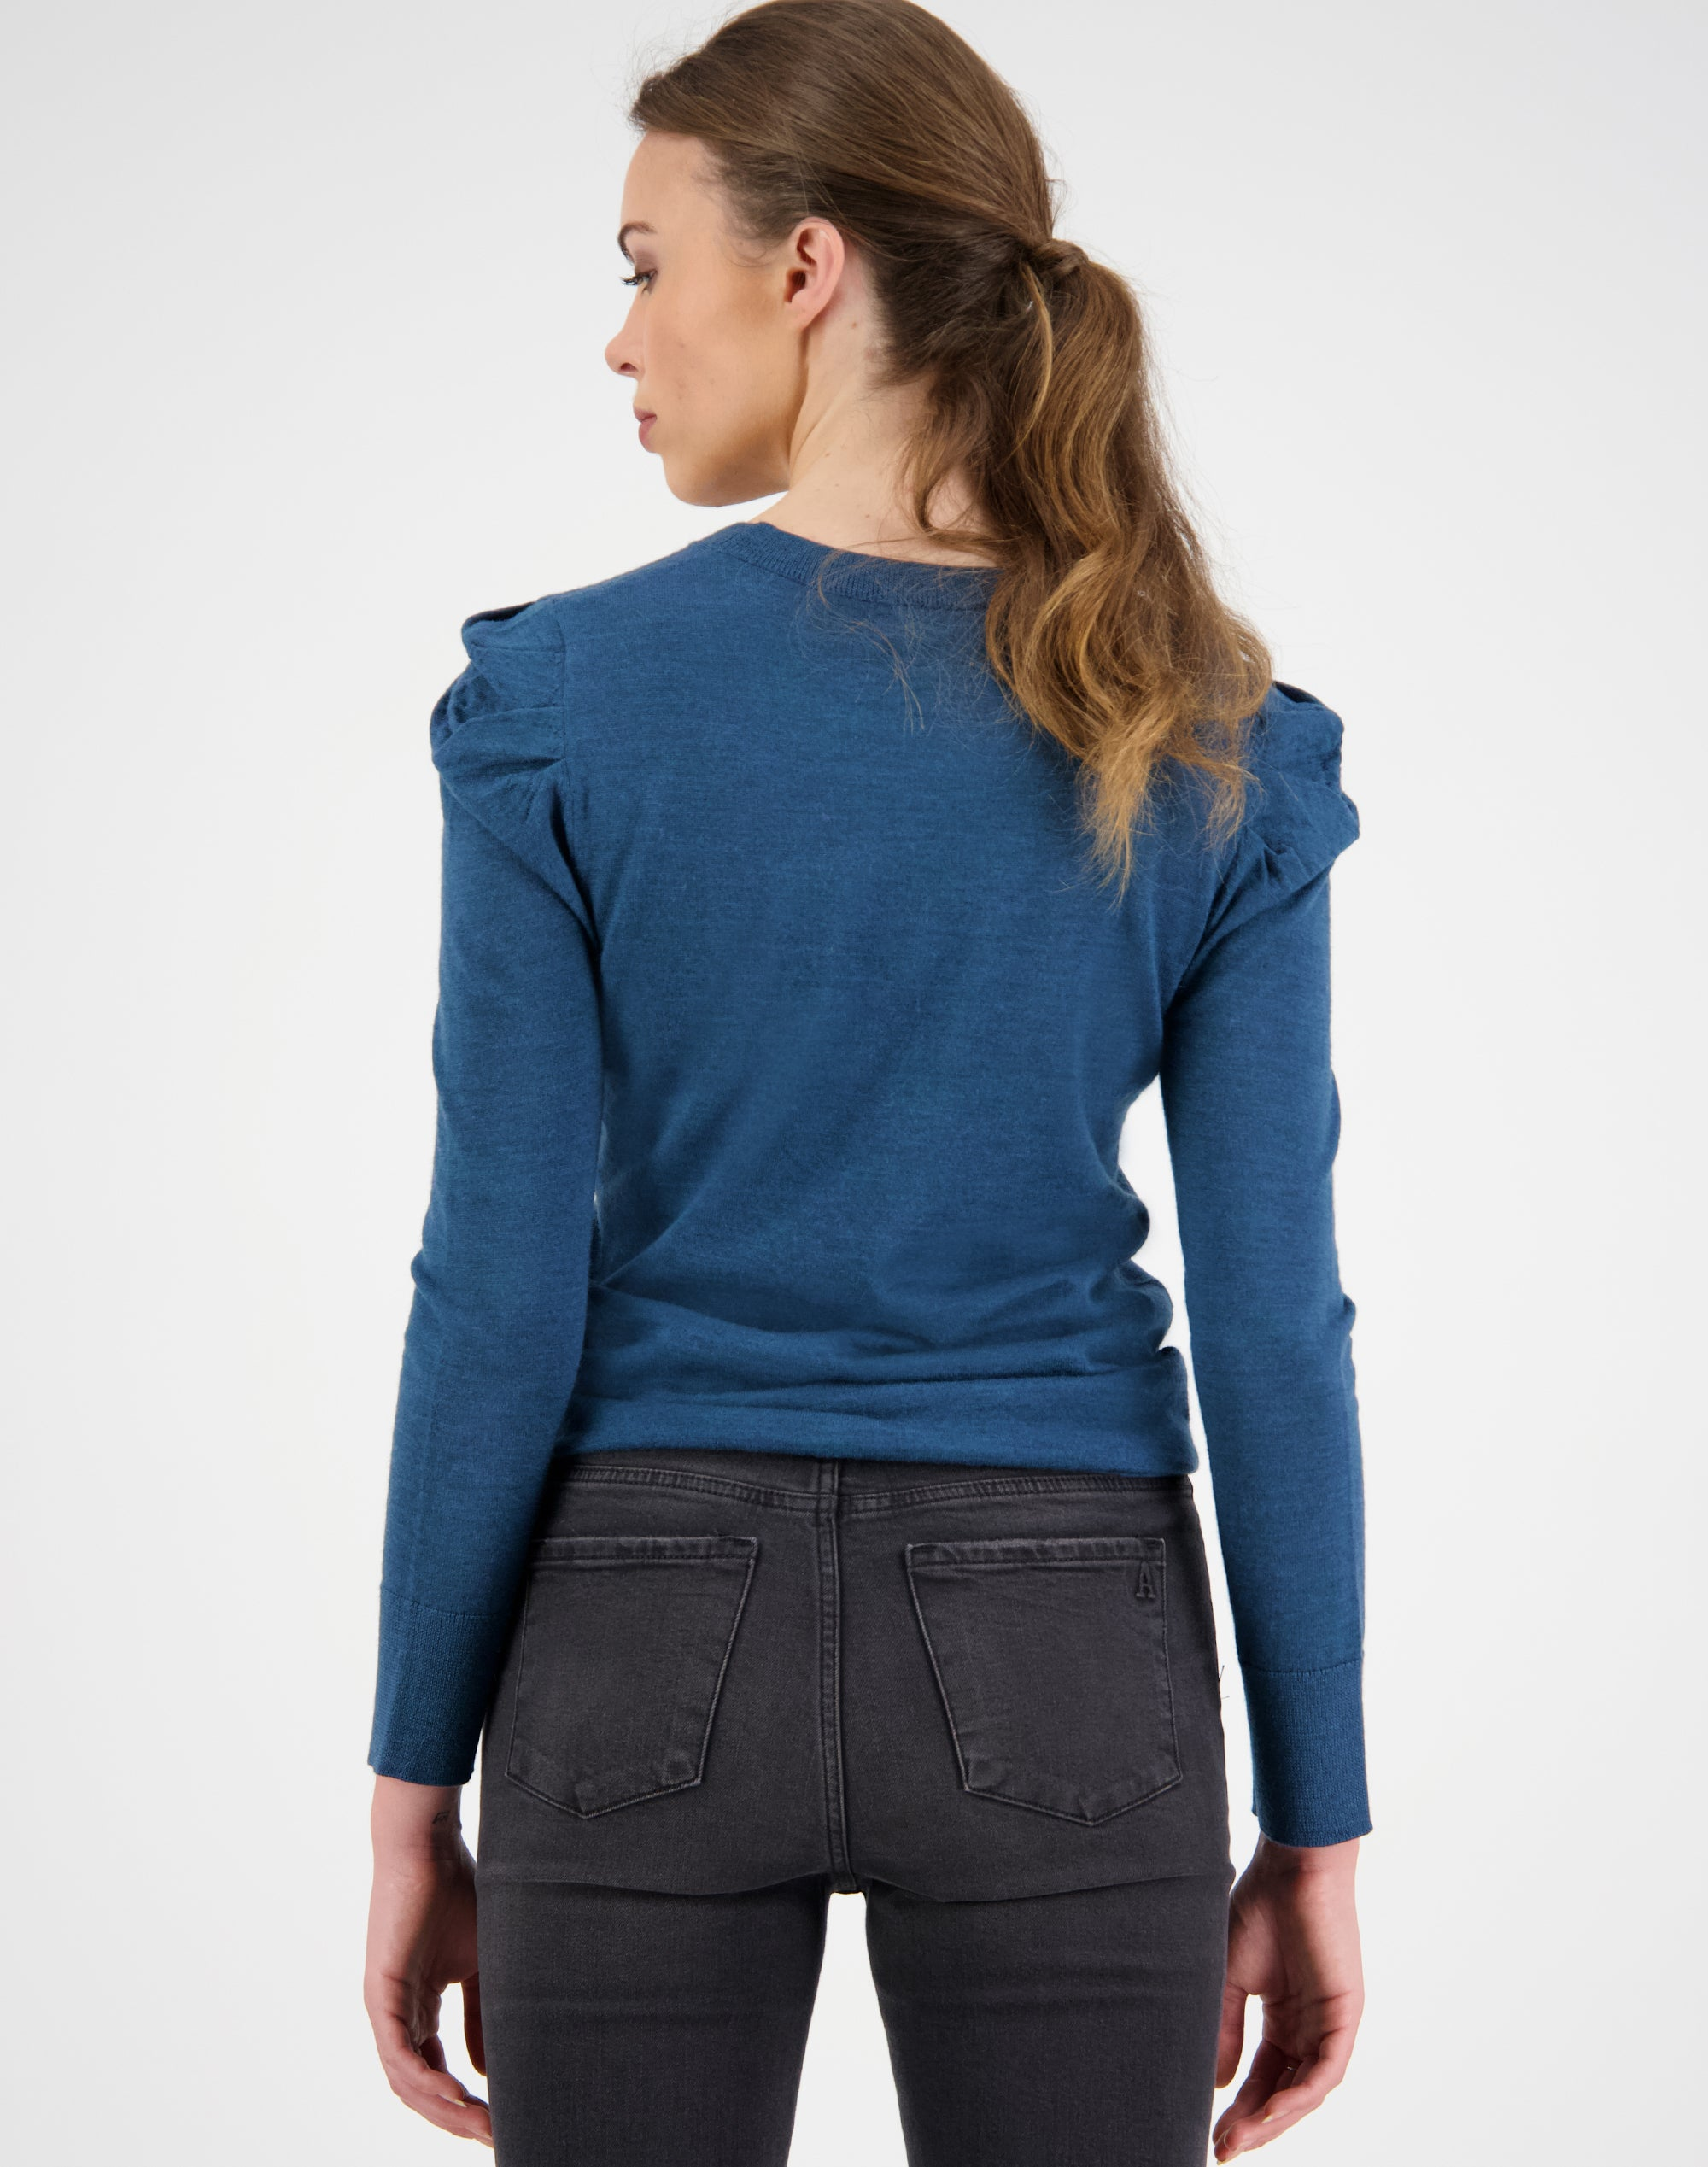 Finer Fetch Merino Sweater